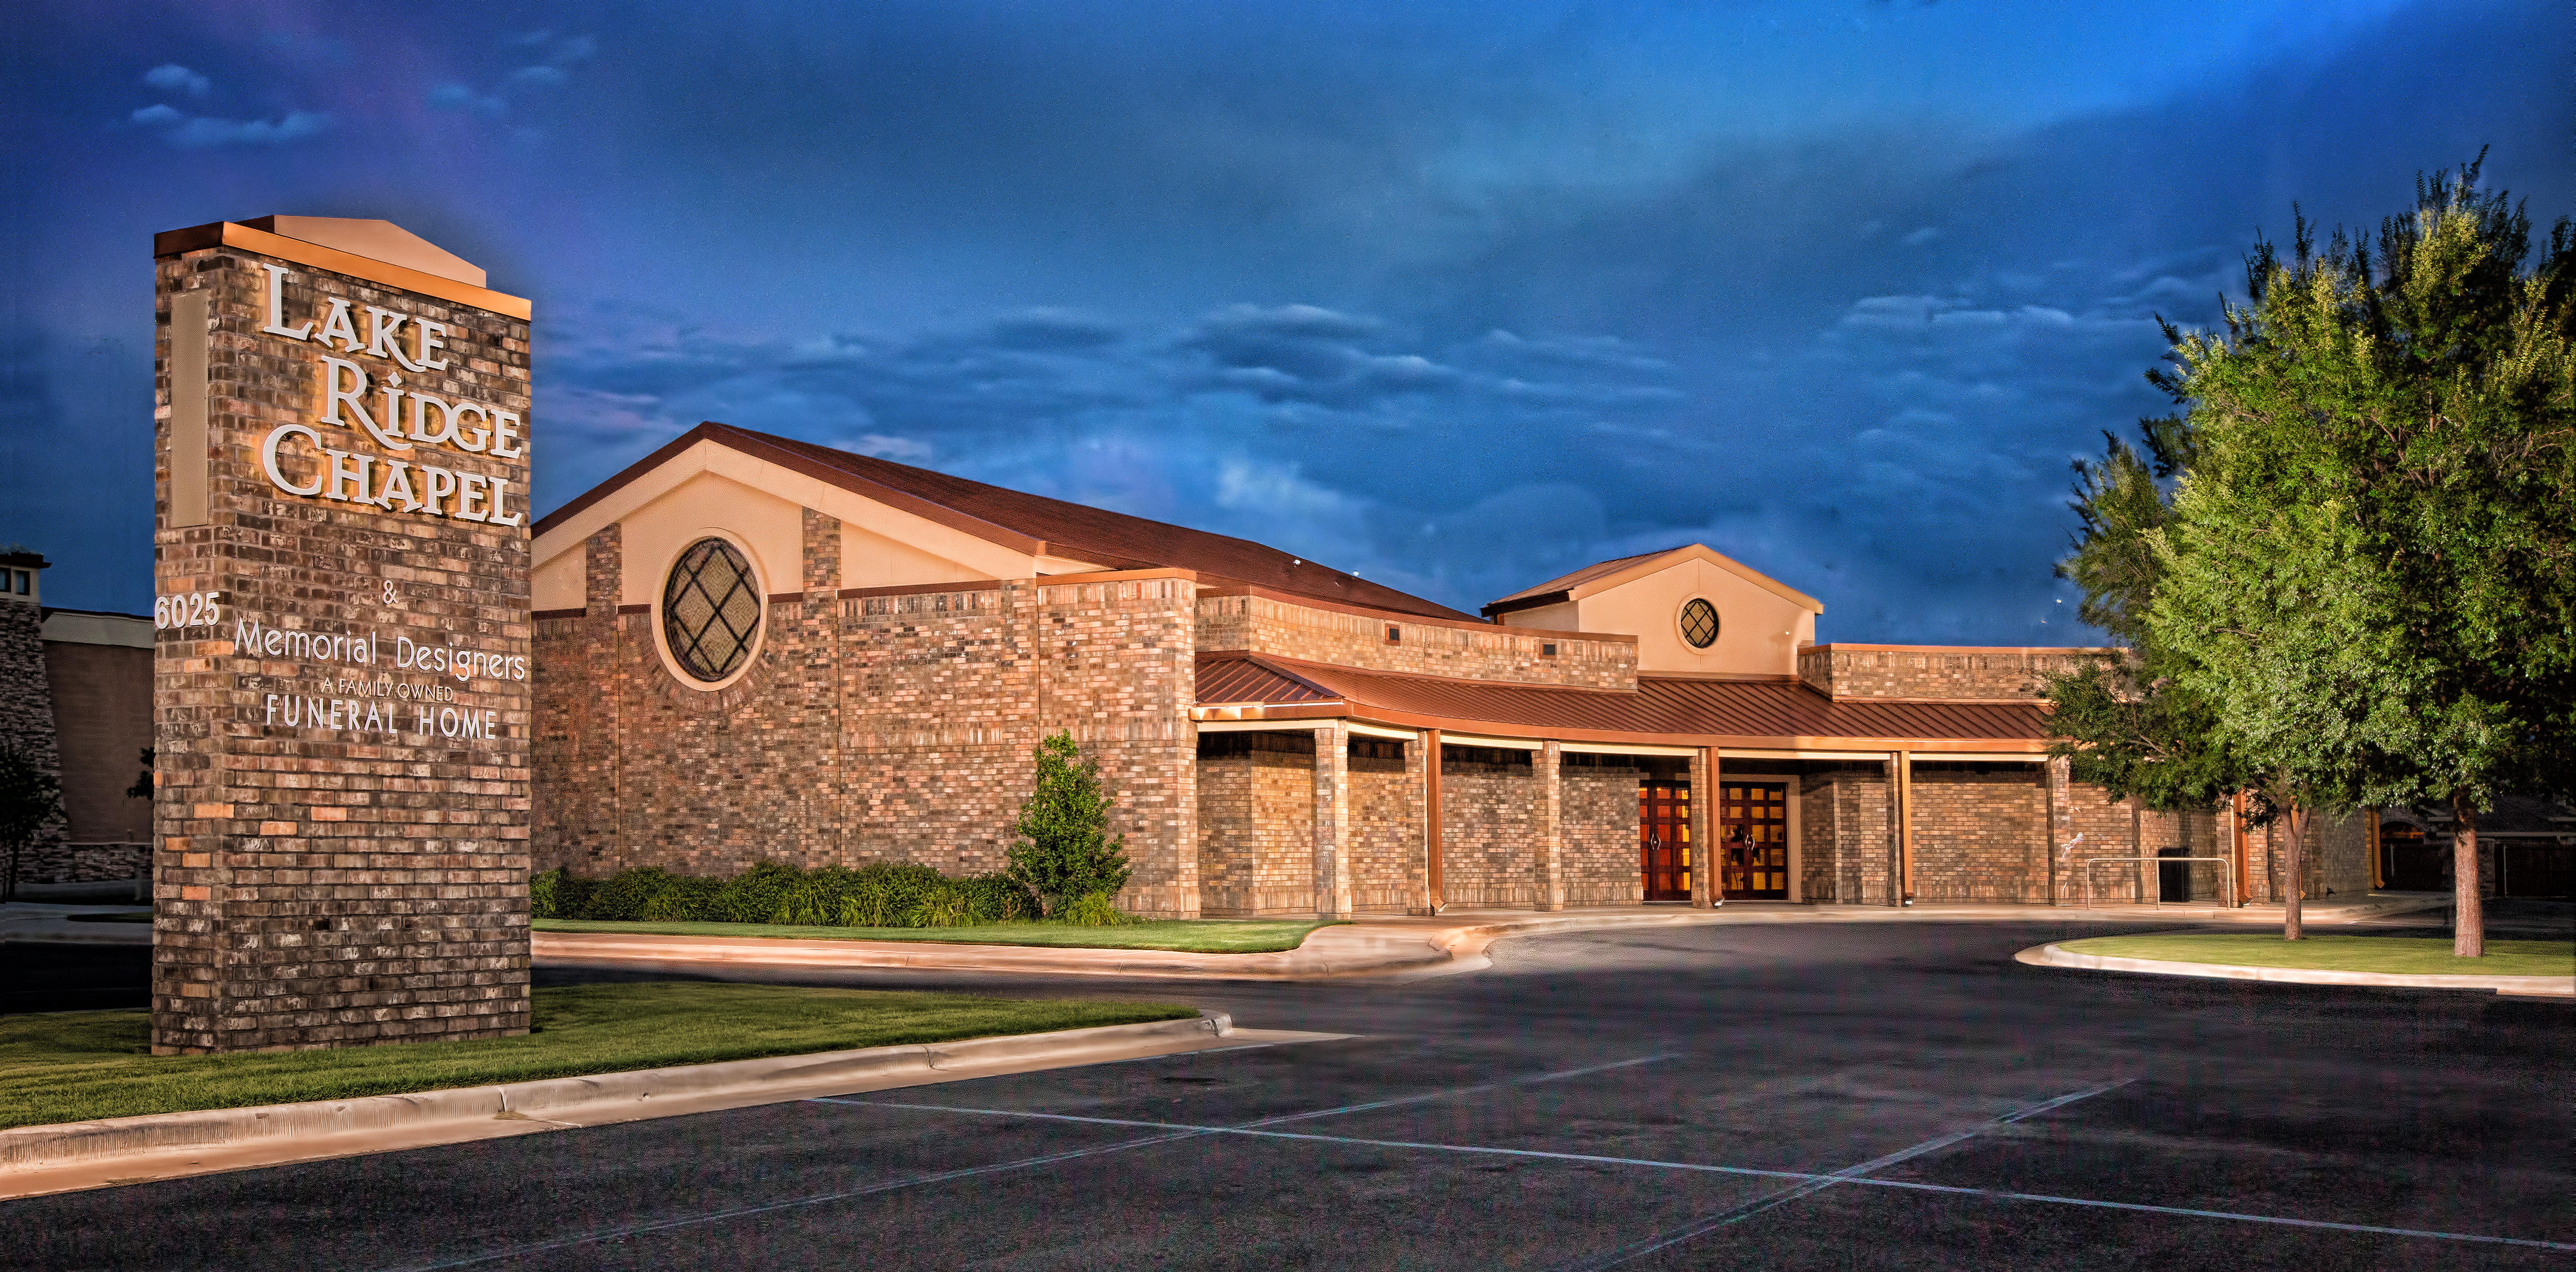 Lake Ridge Chapel & Memorial Designers reviews | Consumer Services at 6025 82nd St - Lubbock TX